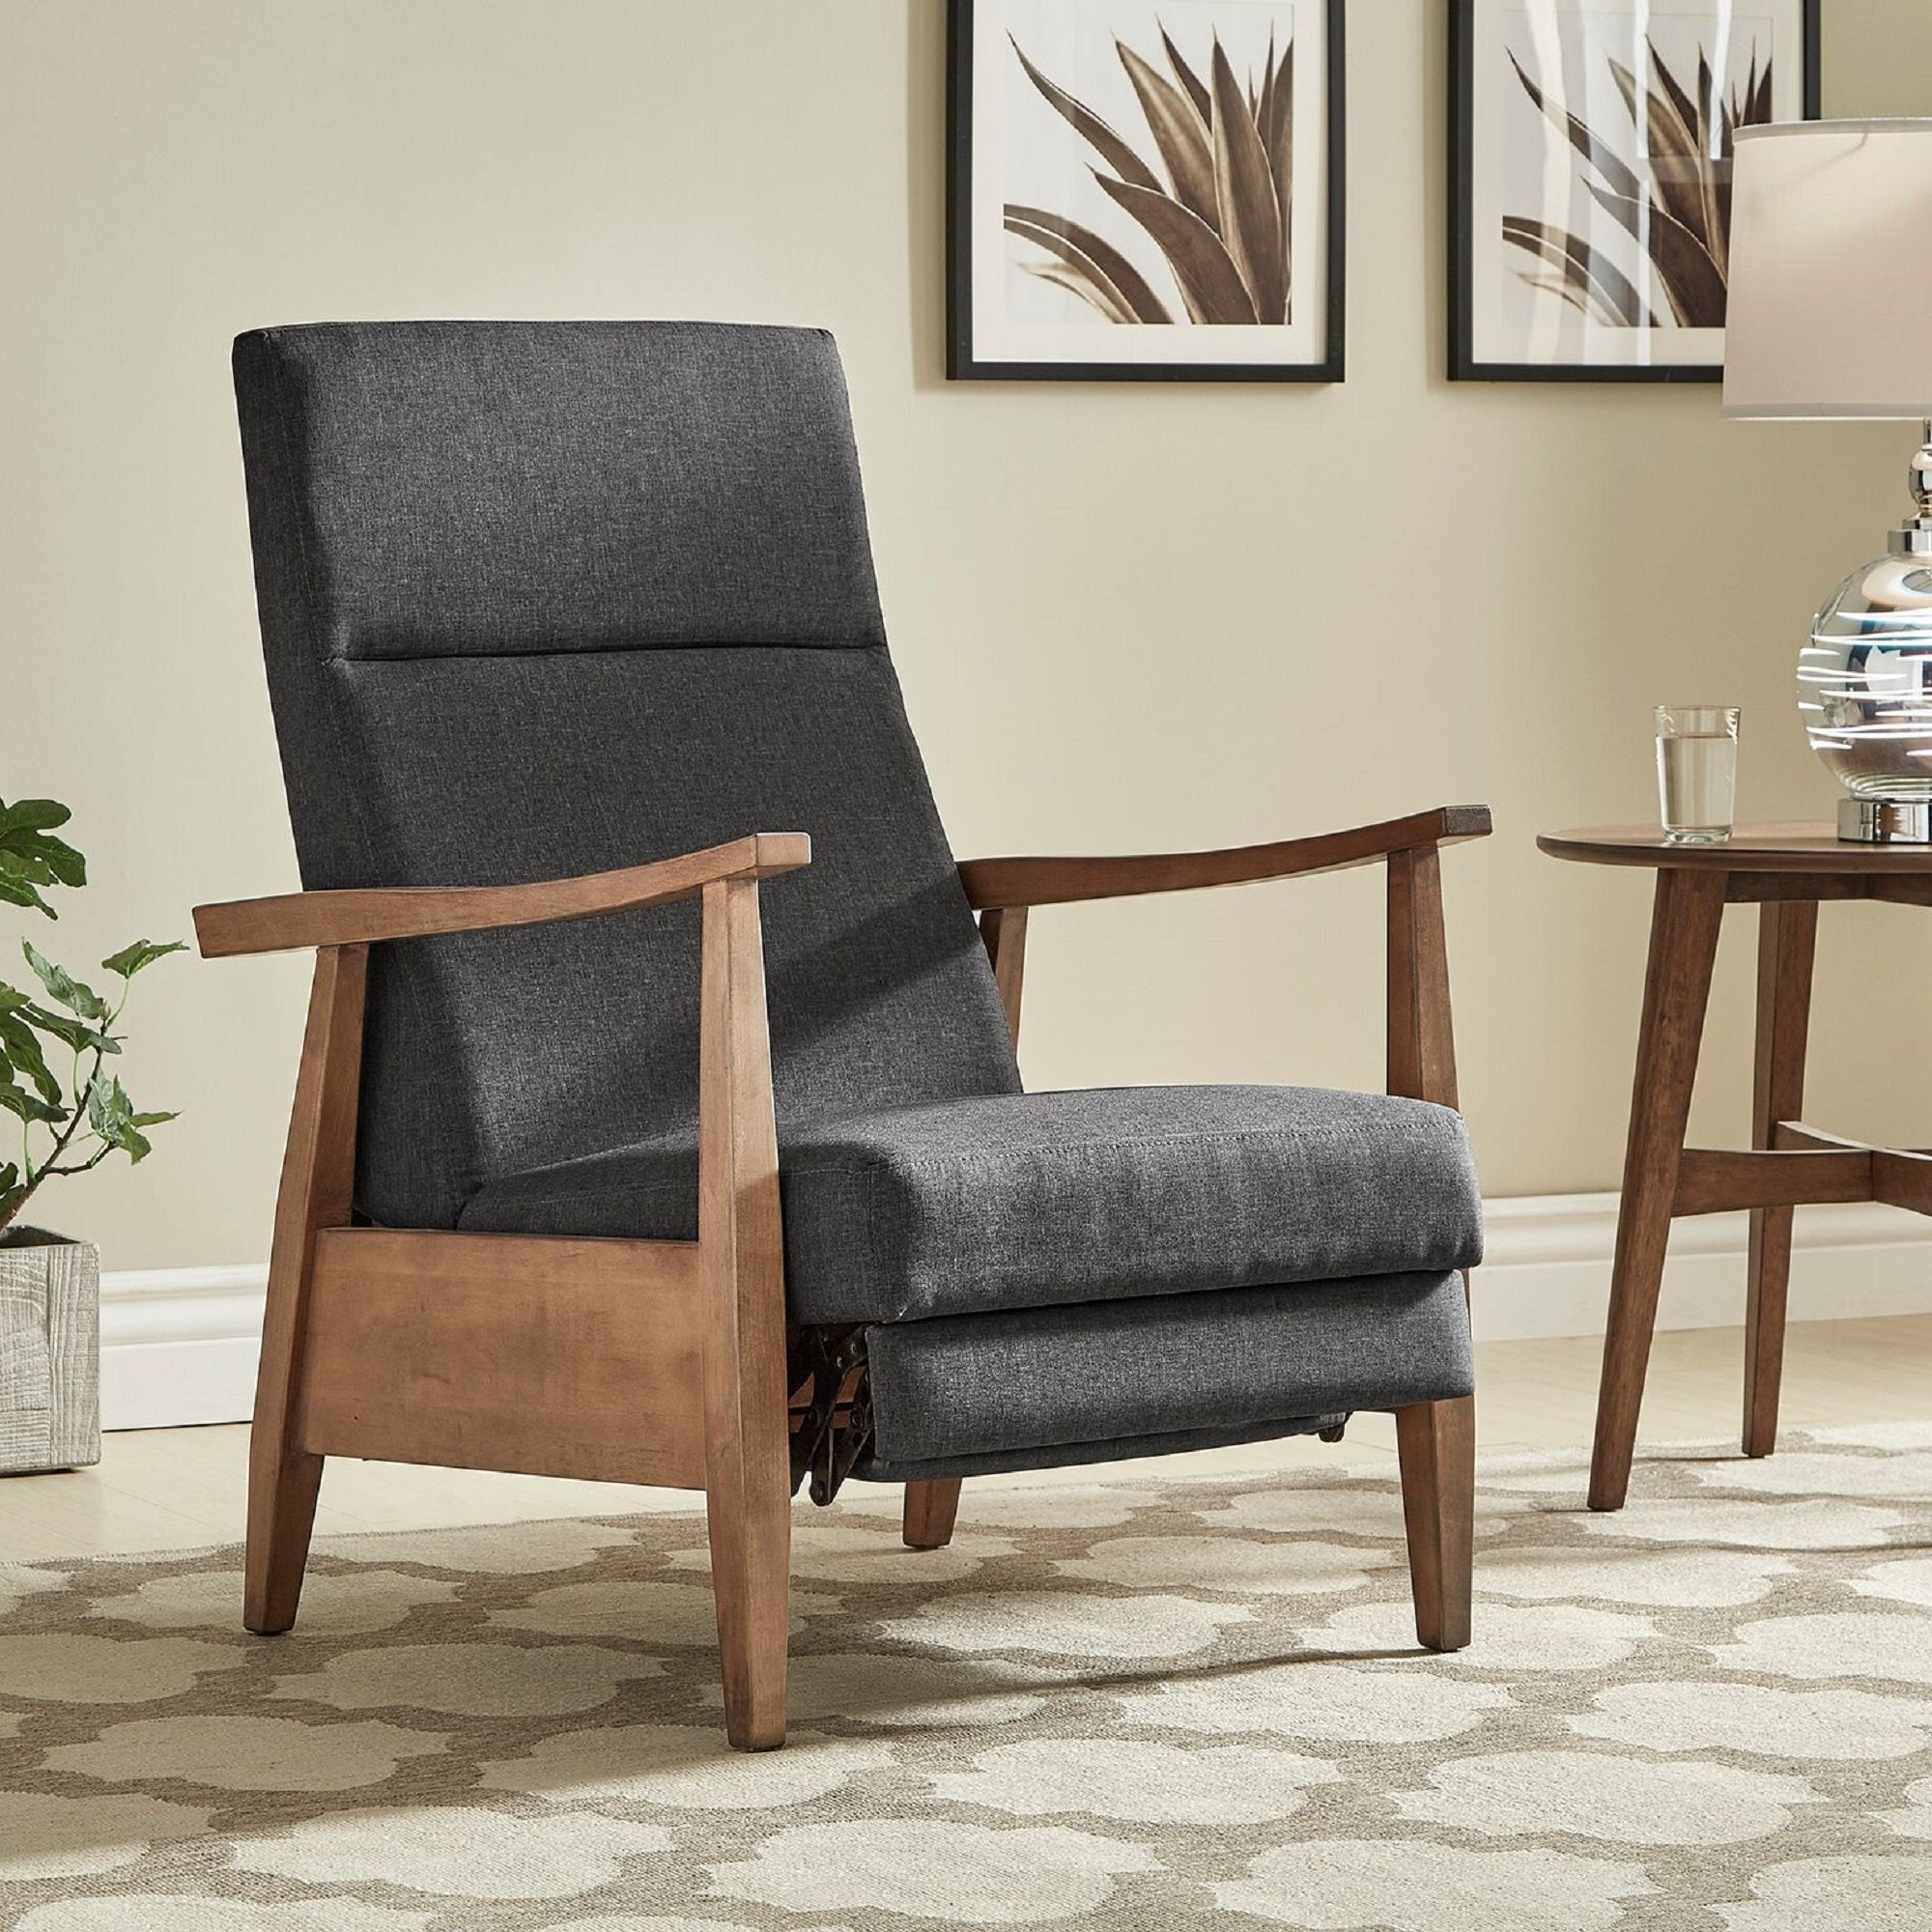 ottoman veneer java furniture affordable lounge distressed lifestyle and chair htm npd recliner pu grayson arm stylish bent al walnut frame